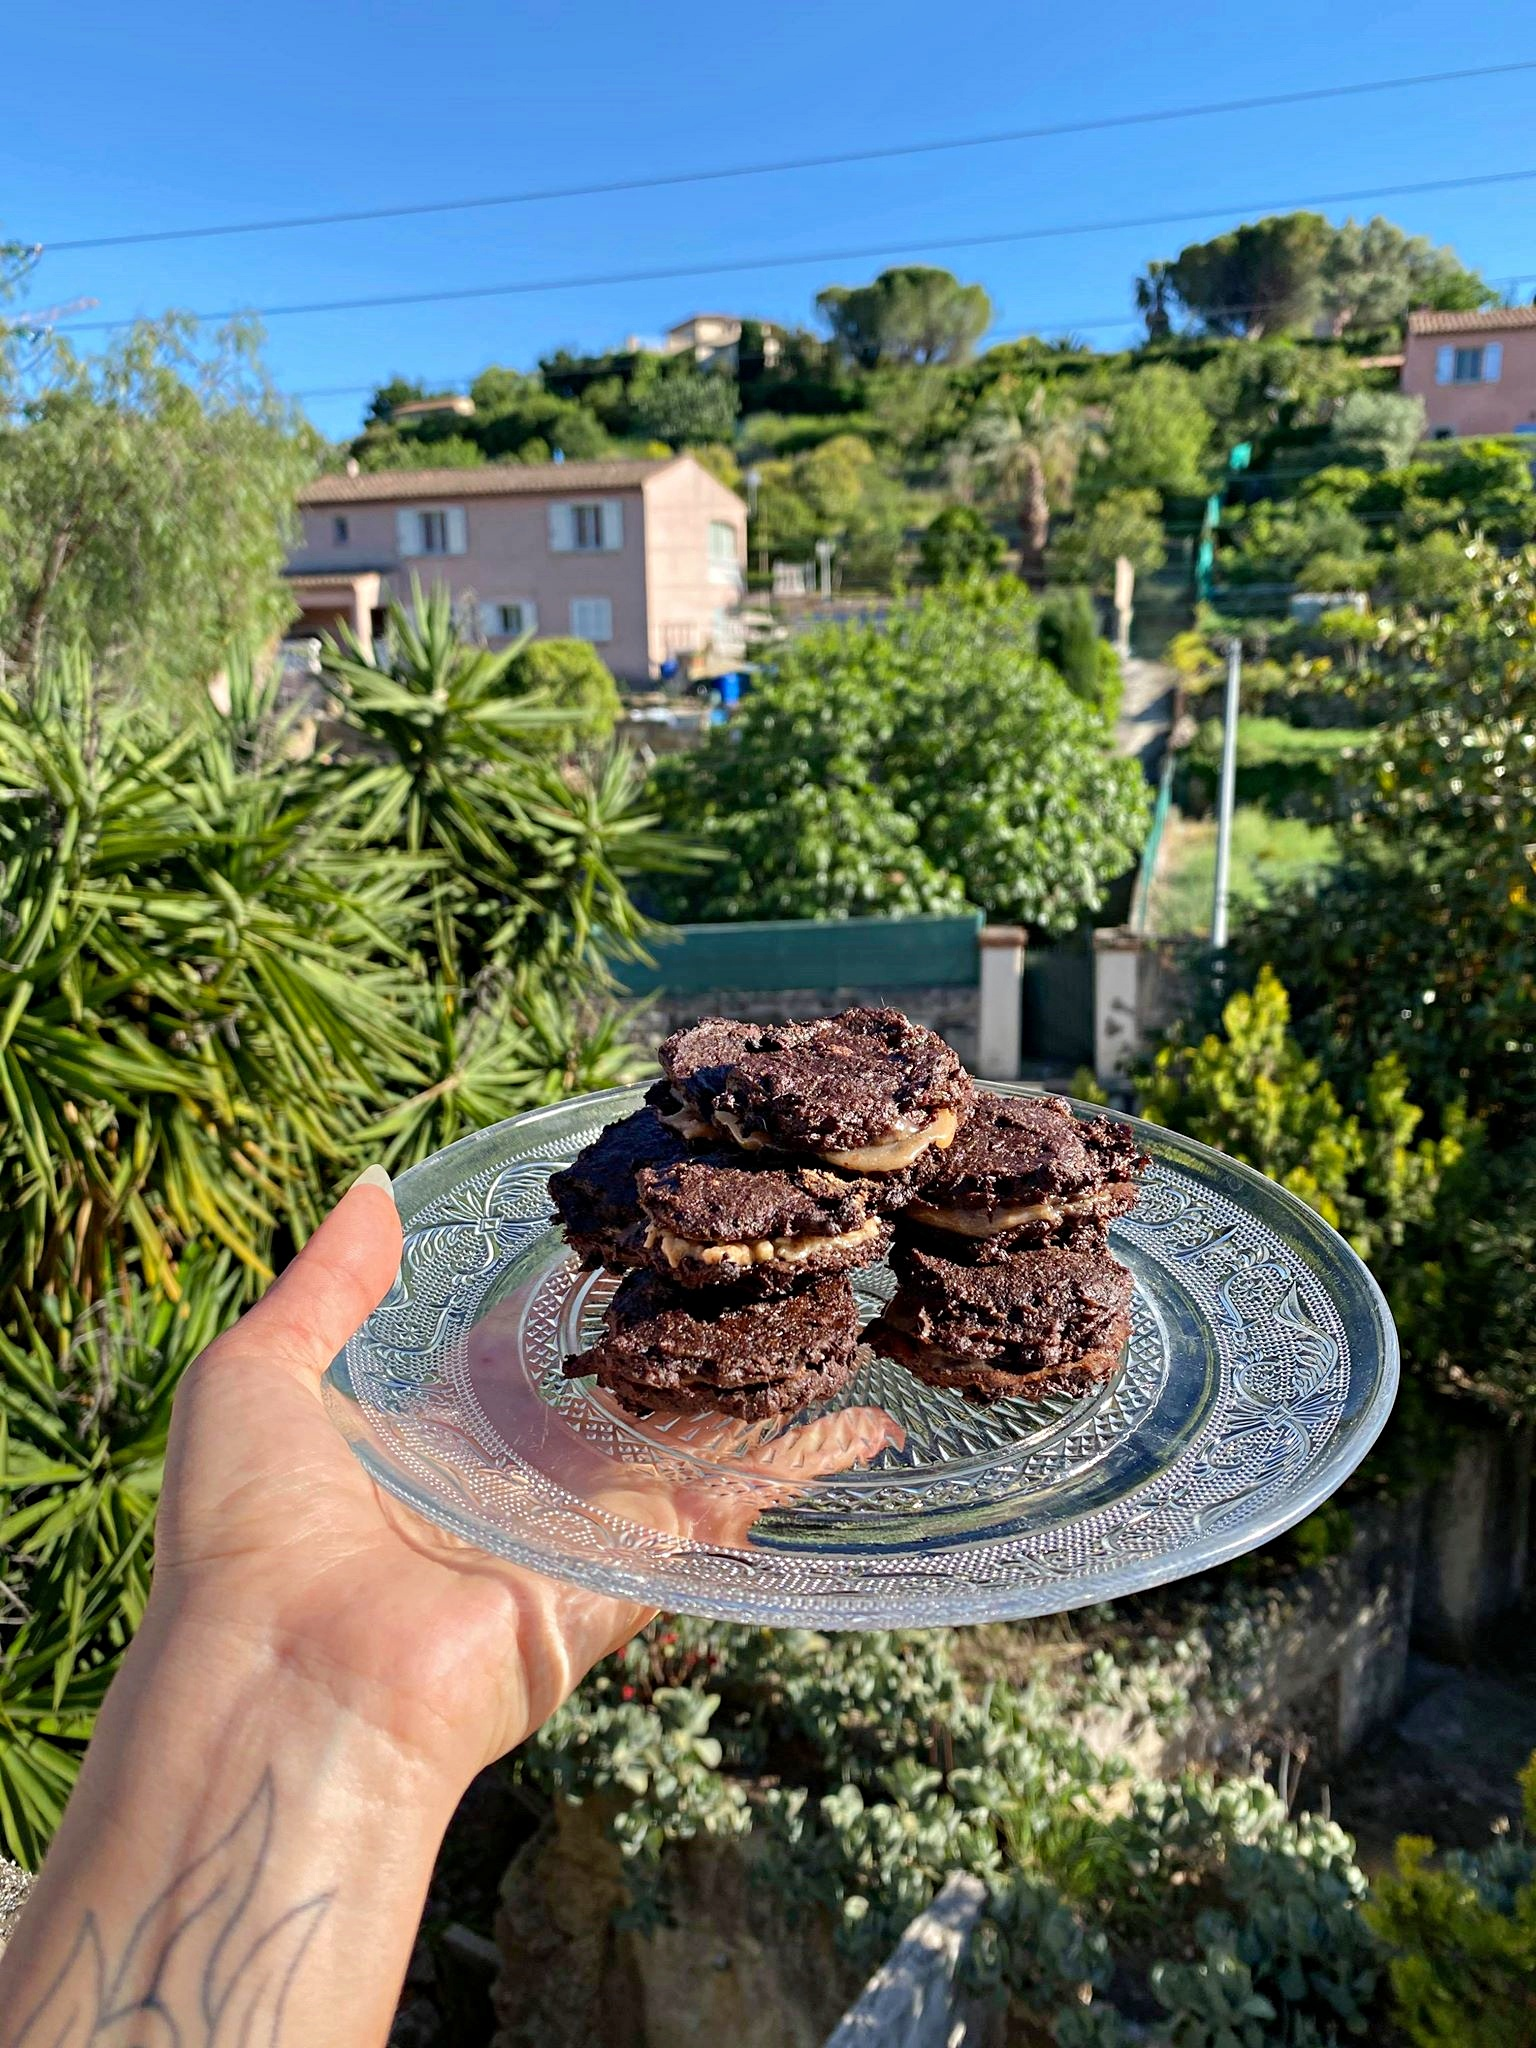 Recette d'Oreo healthy